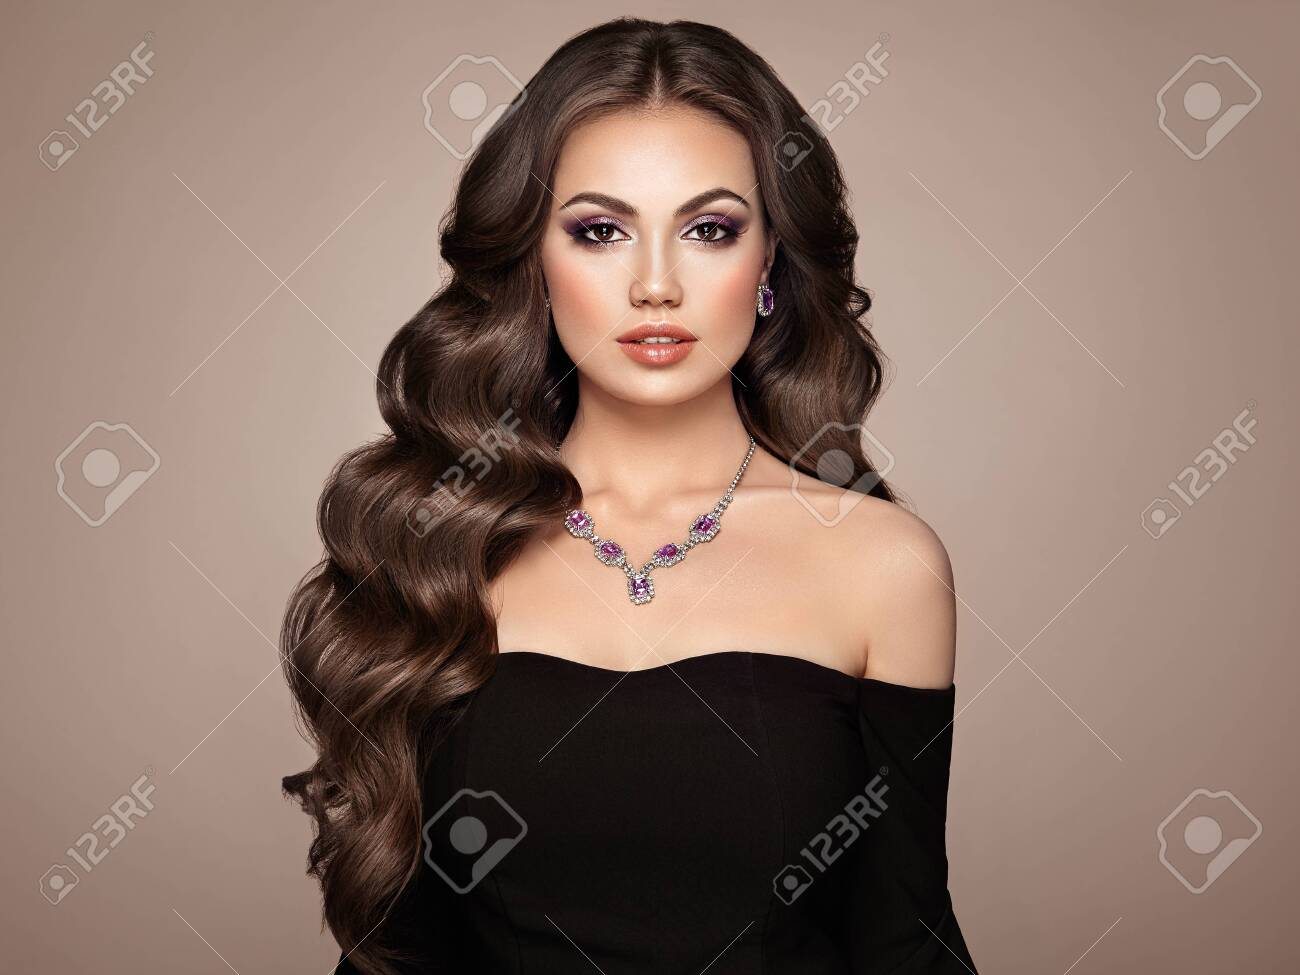 Brunette Girl with Long Healthy and Shiny Curly Hair. Care and Beauty. Beautiful Model Woman with Wavy Hairstyle. MakeUp and Jewelry - 152655326